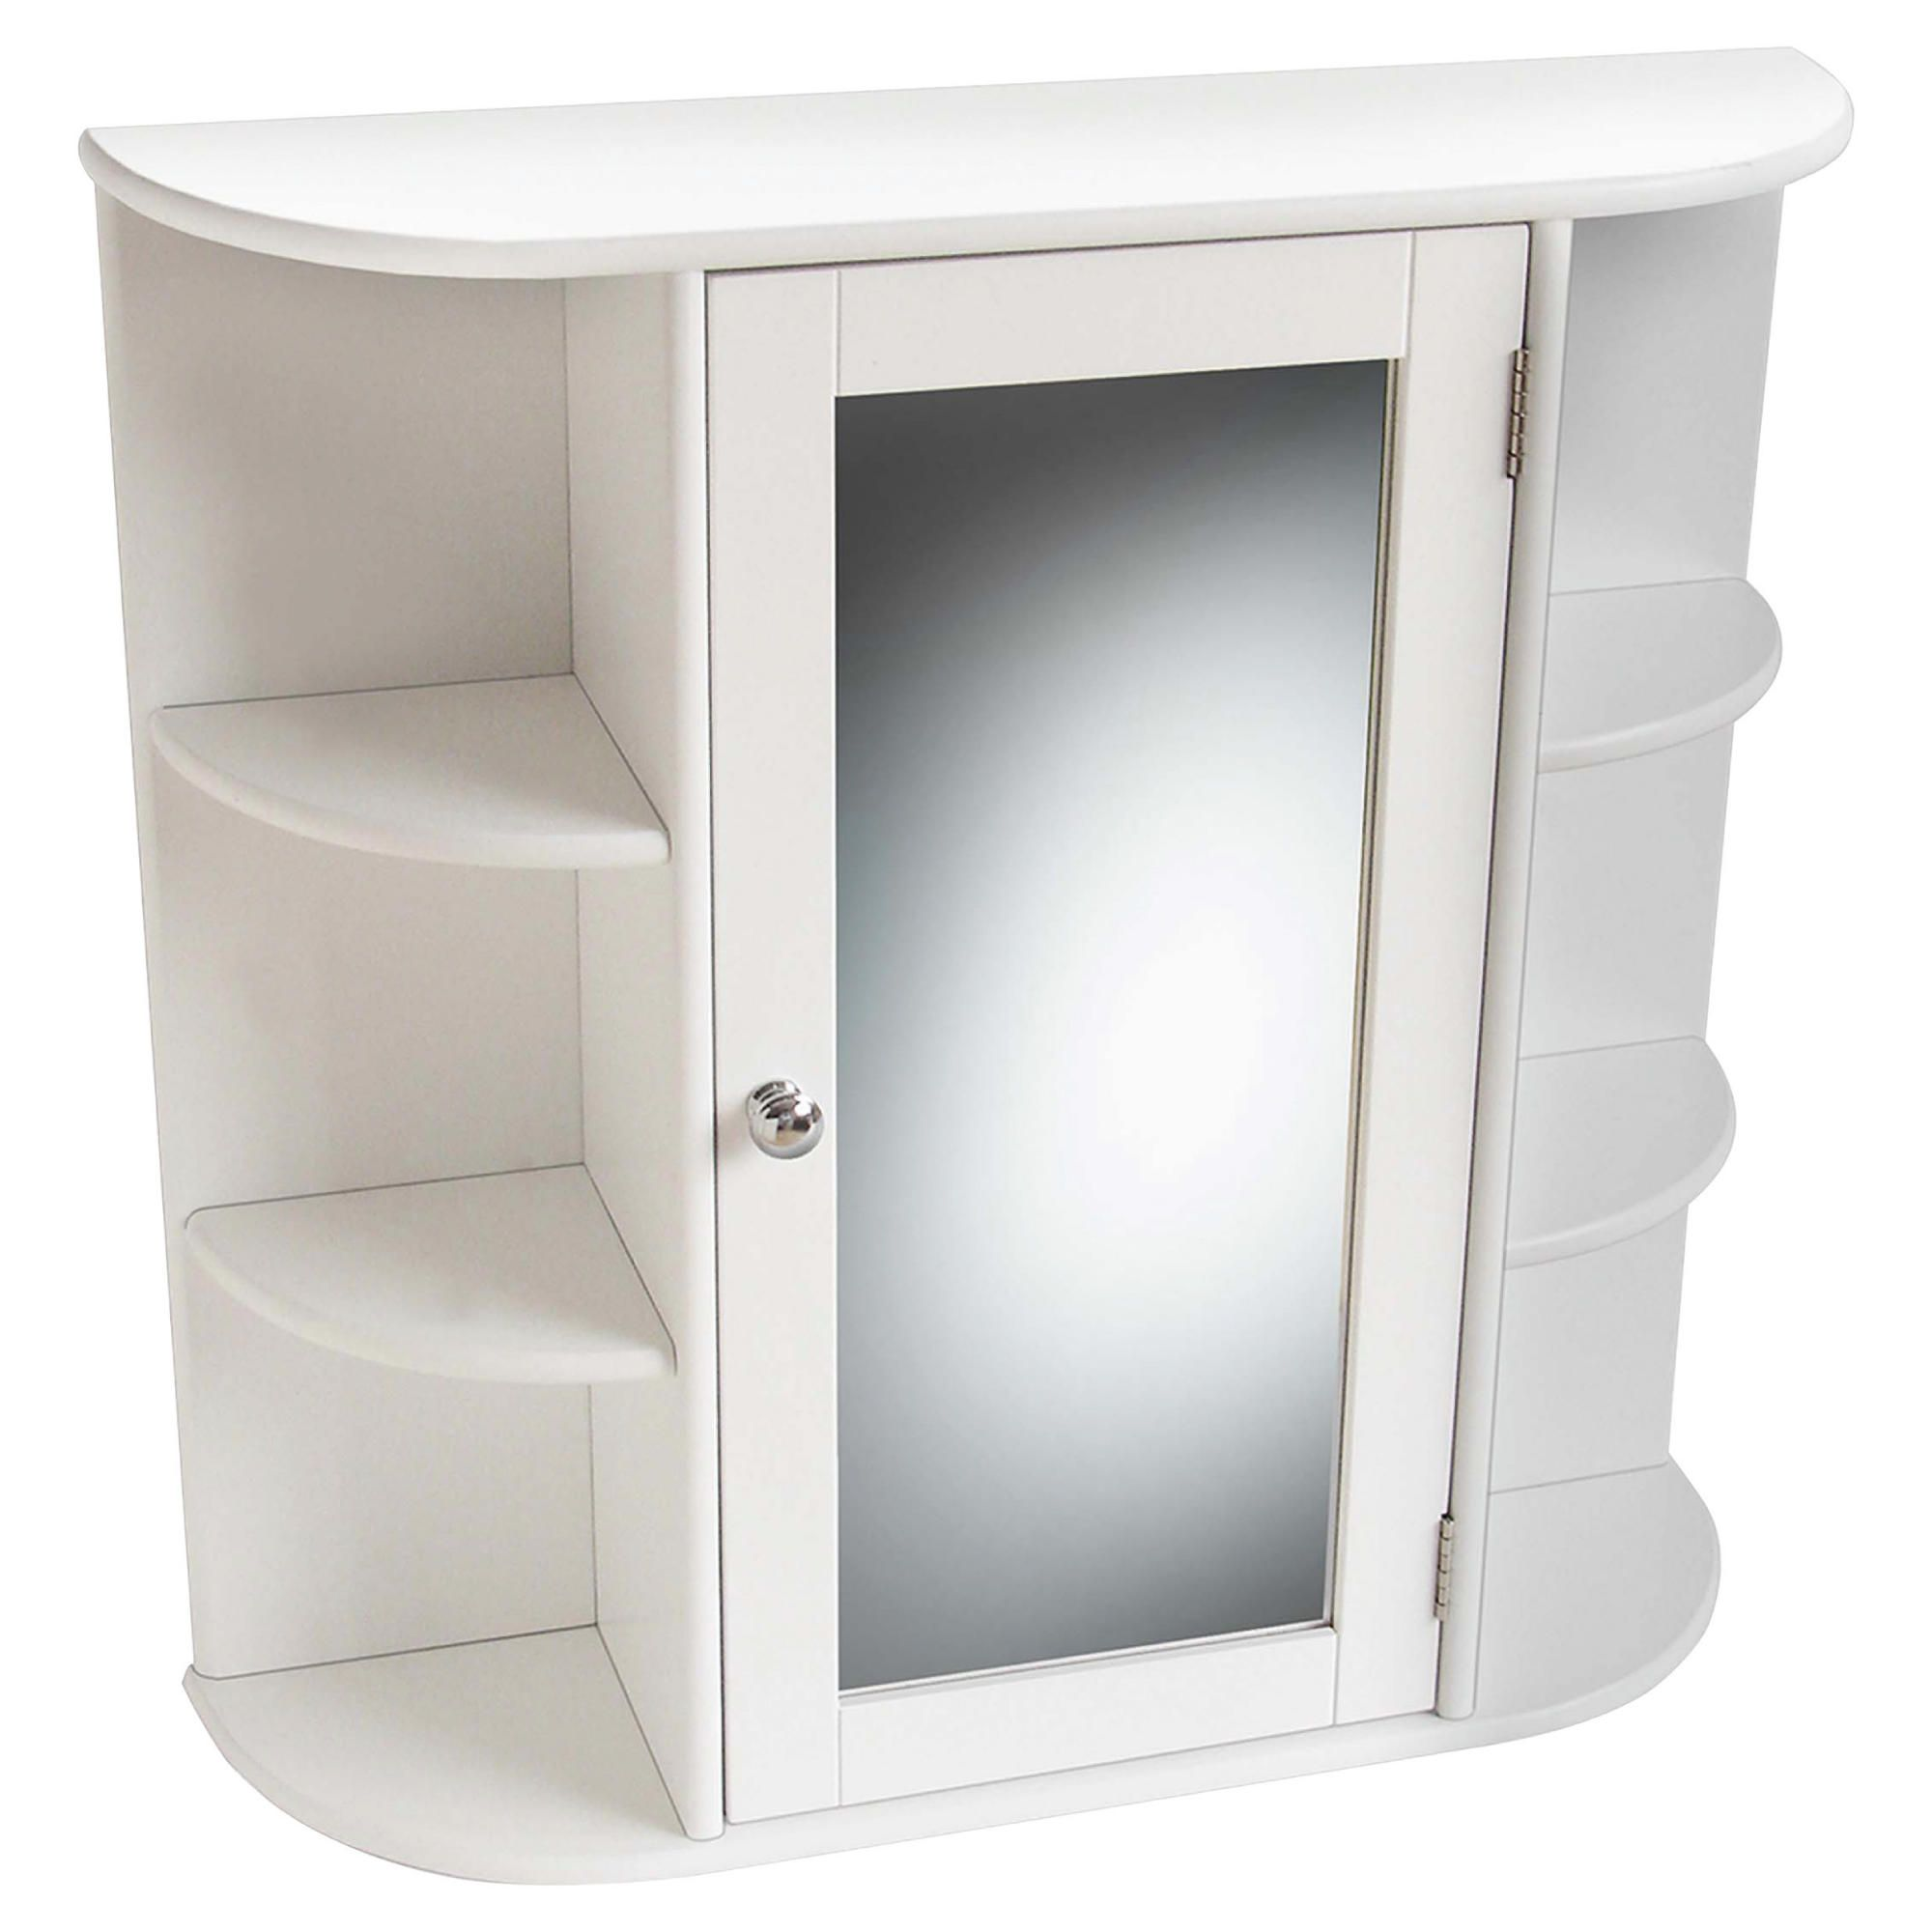 Mirrored white wall cabinet with side shelves bathroom Mirrored bathroom cabinet with shelves